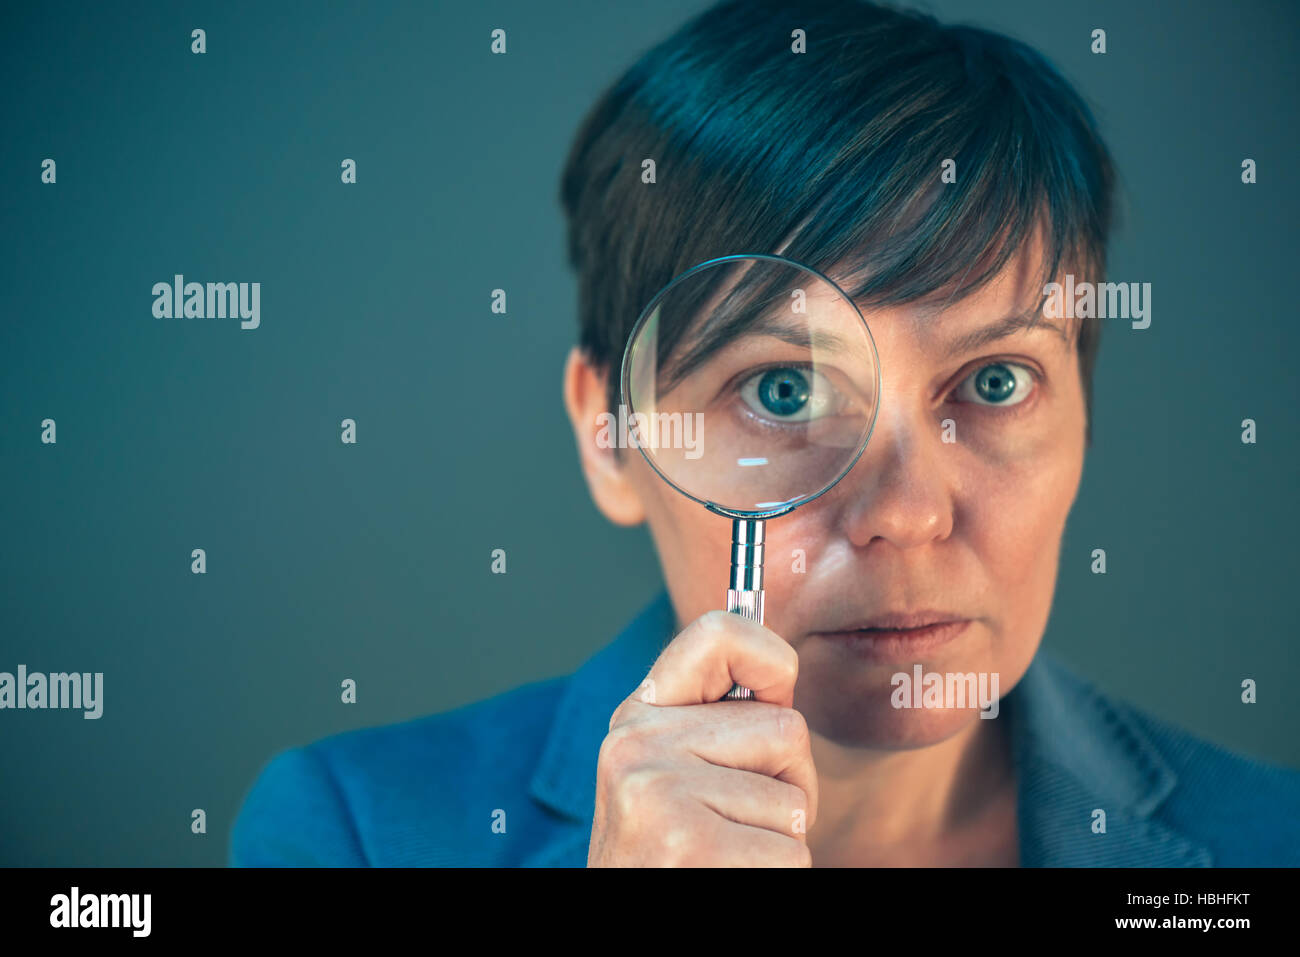 Beautiful businesswoman looking through magnifying glass - search, discover, explore, investigate and analyze concept. - Stock Image